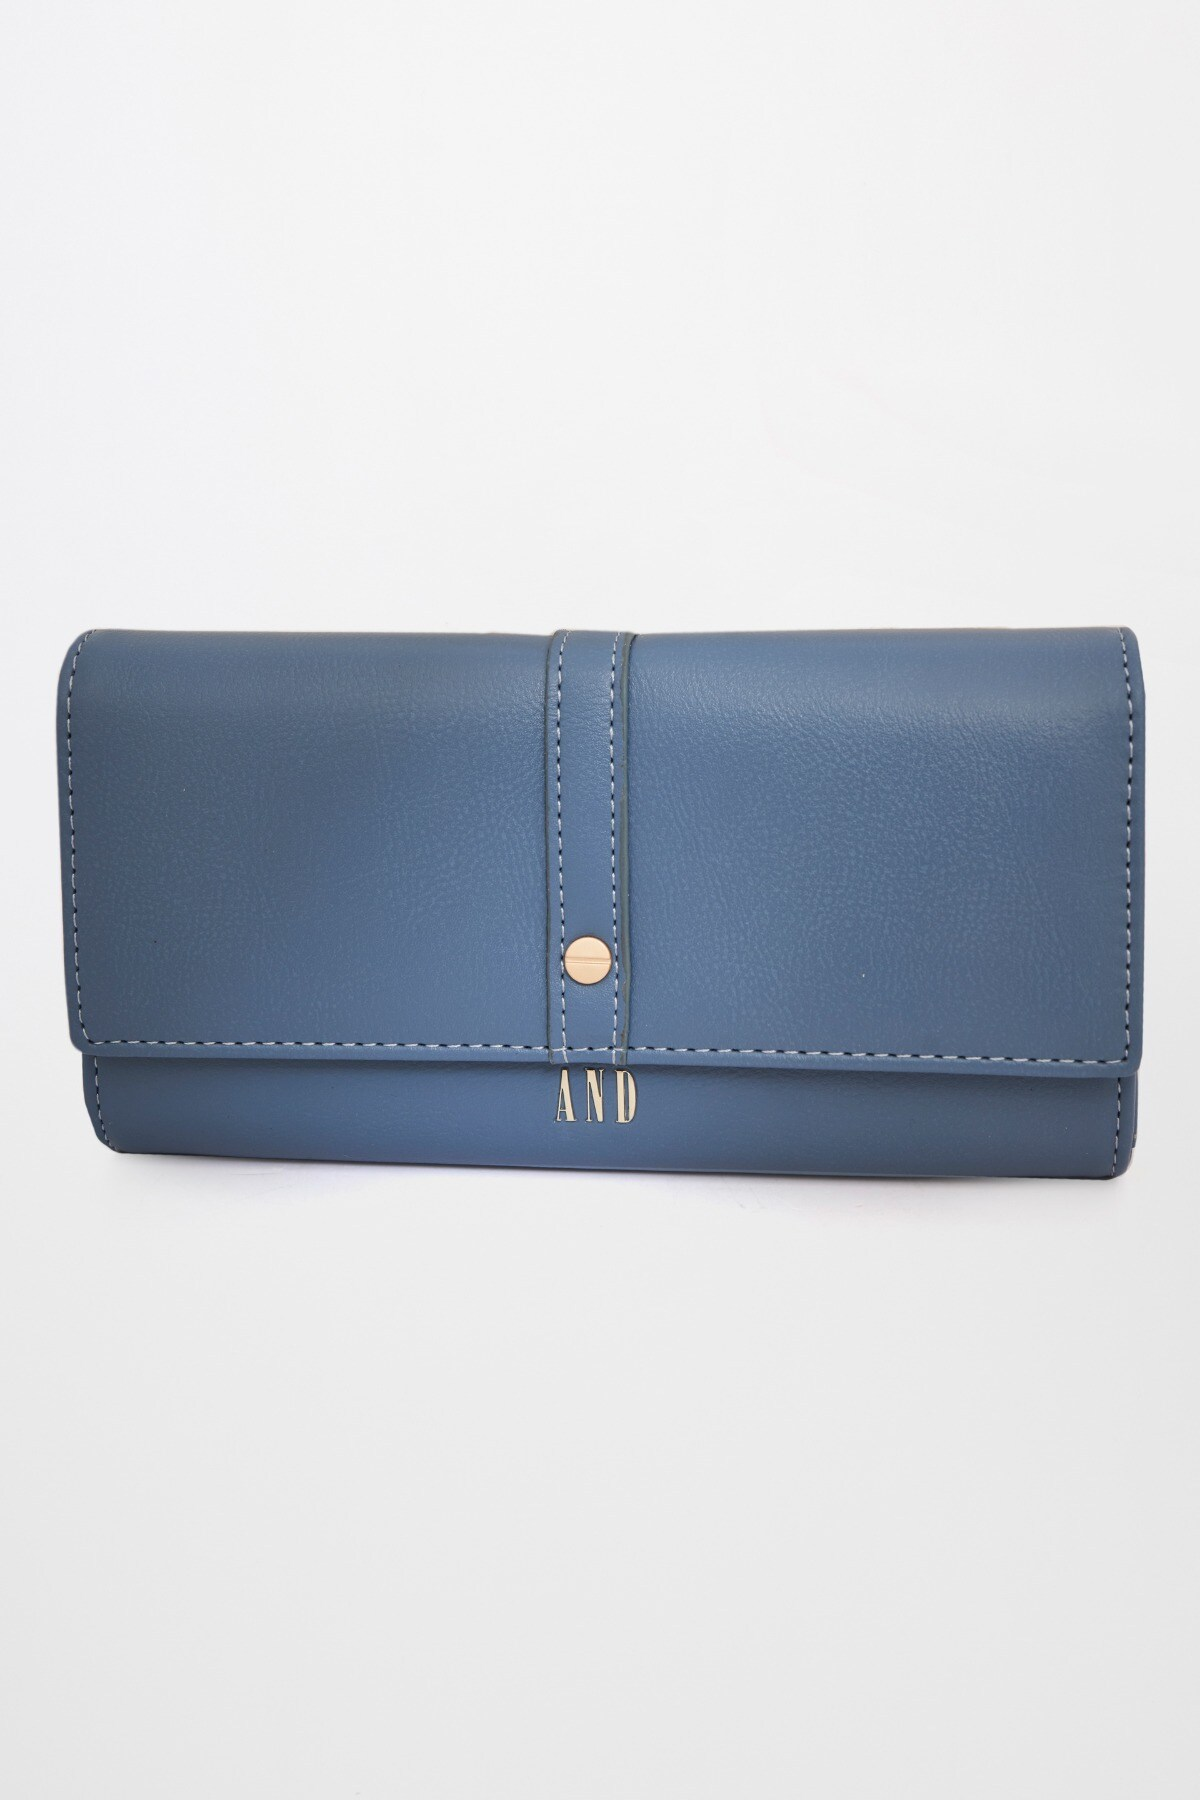 AND   Blue Wallet